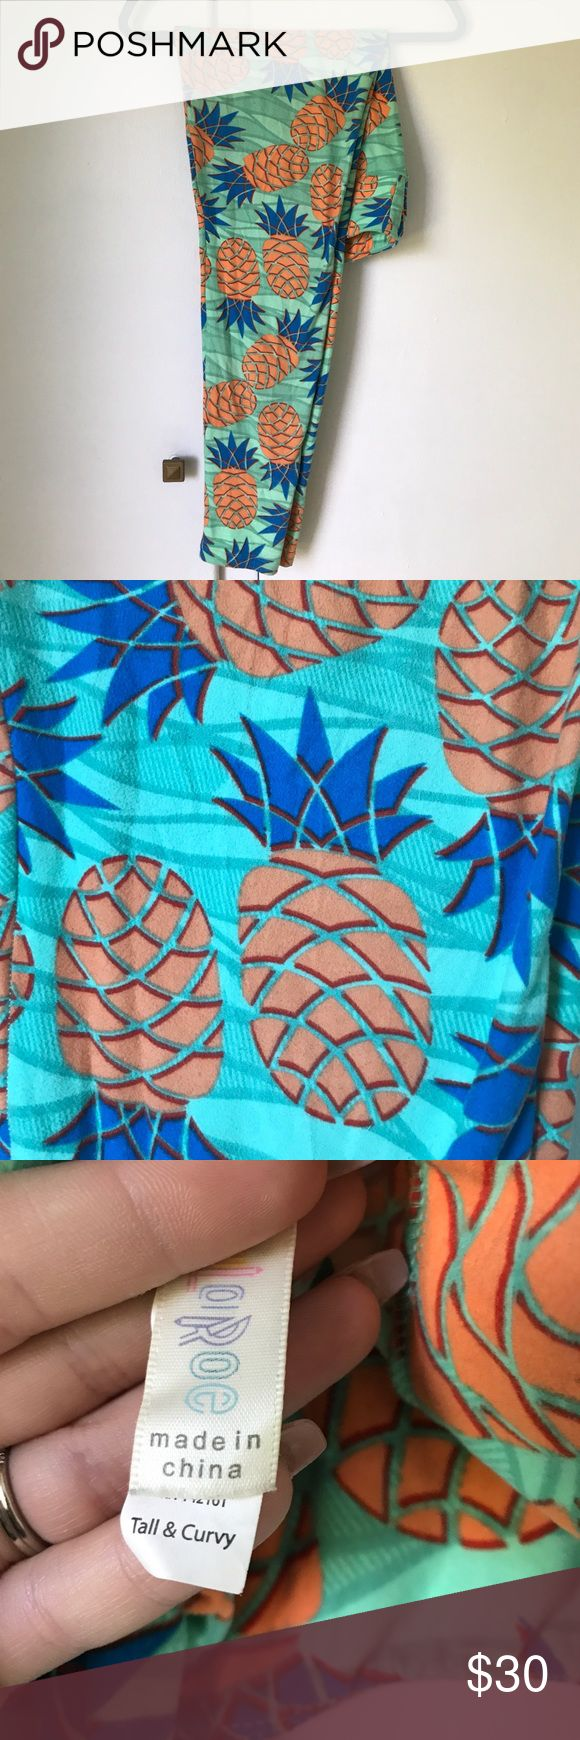 lularoe pineapple leggings lularoe pineapple leggings! worn only a few times and washed and dried per lularoe standards. minimal pilling, but there is some due to the super soft nature of the fabric, on the inside thigh. LuLaRoe Pants Leggings